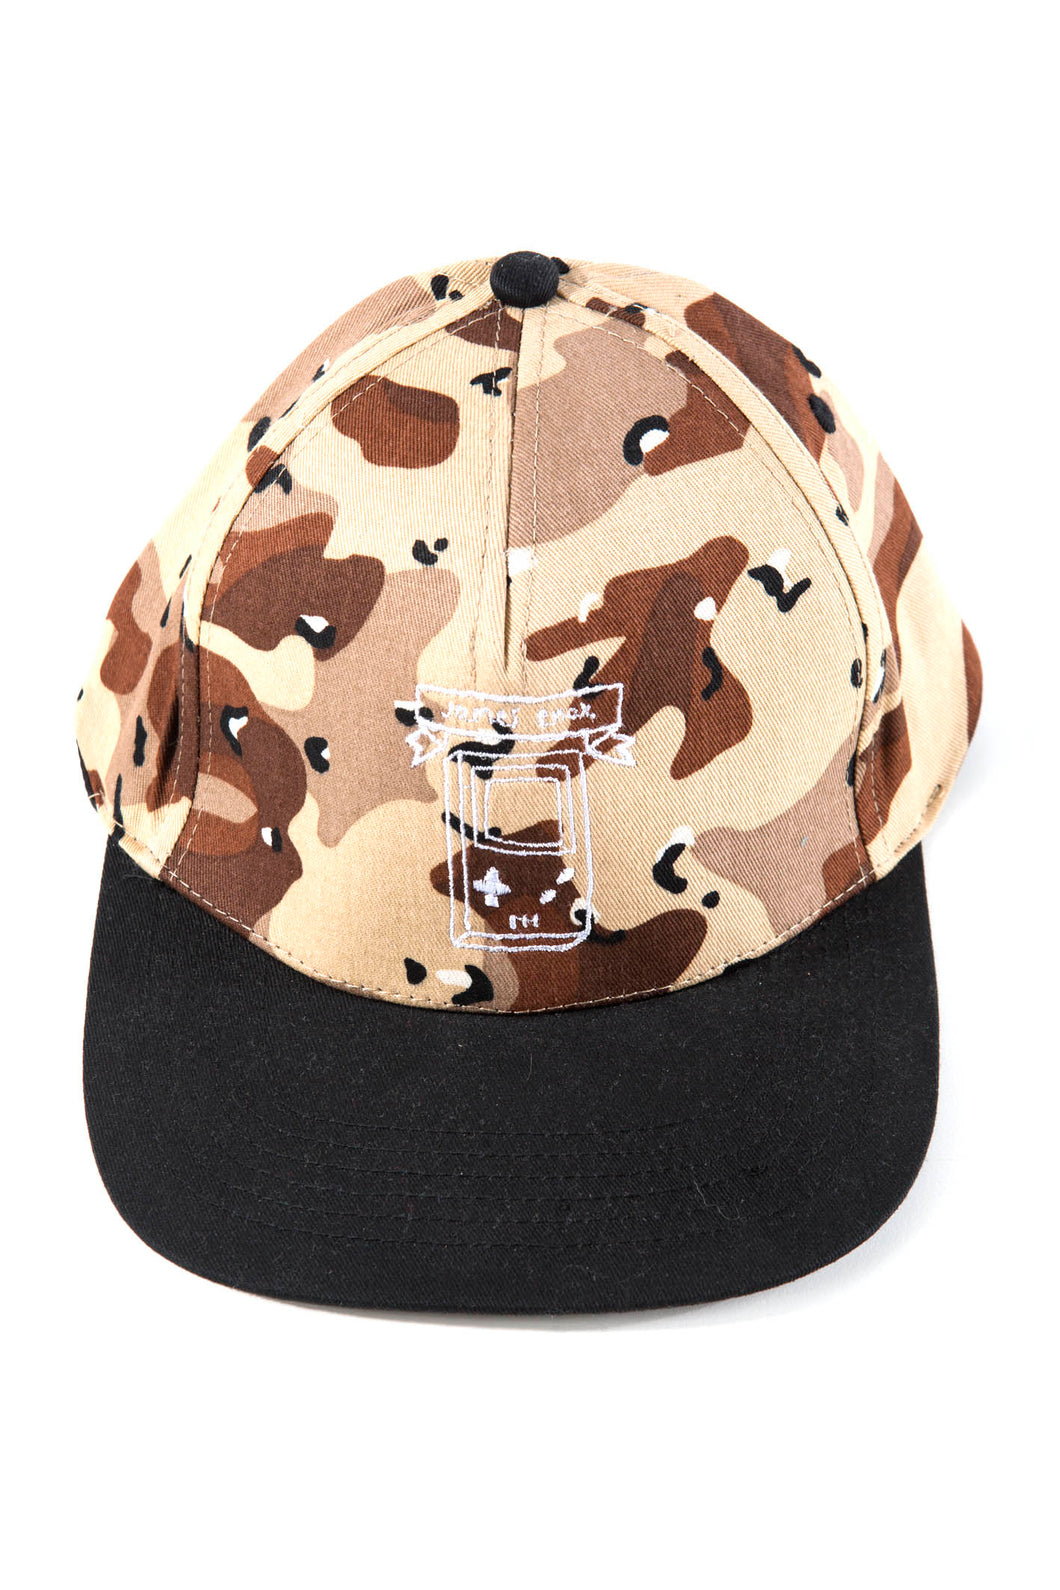 James Enox X Game Boy X   Desert Camo  CAP